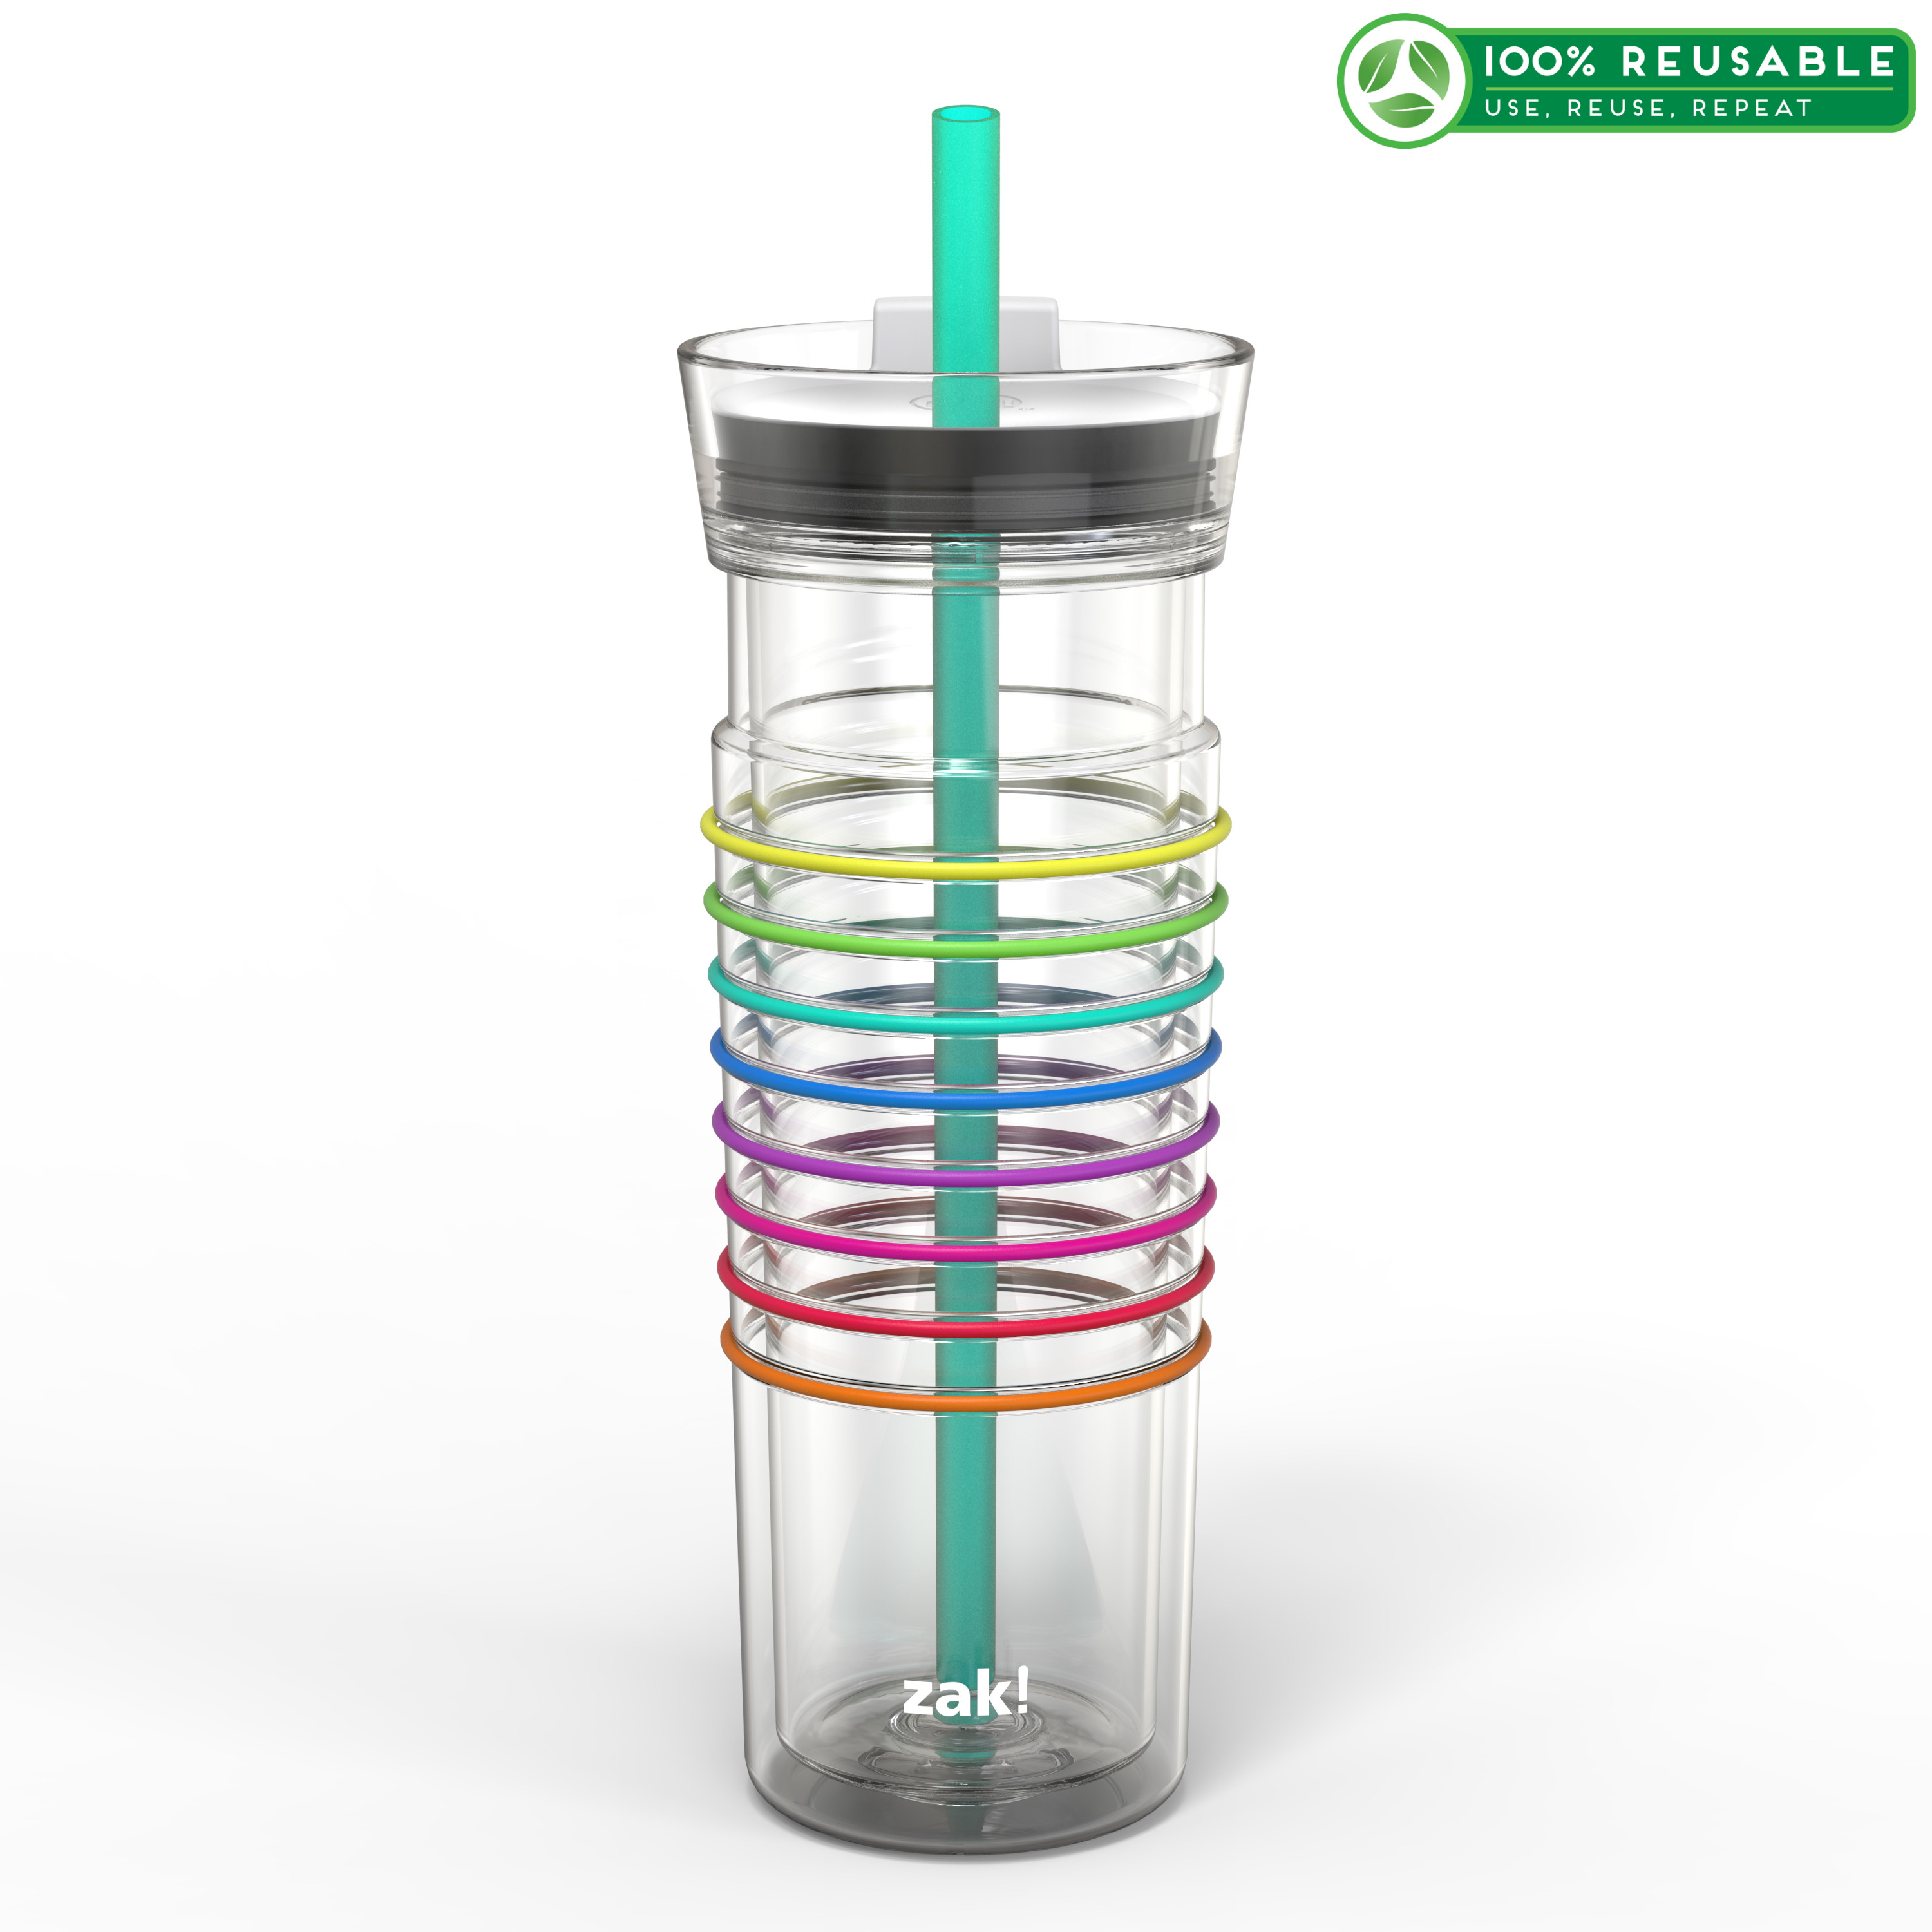 Zak! Hydration 20 ounce Insulated Tumbler, Clear slideshow image 1